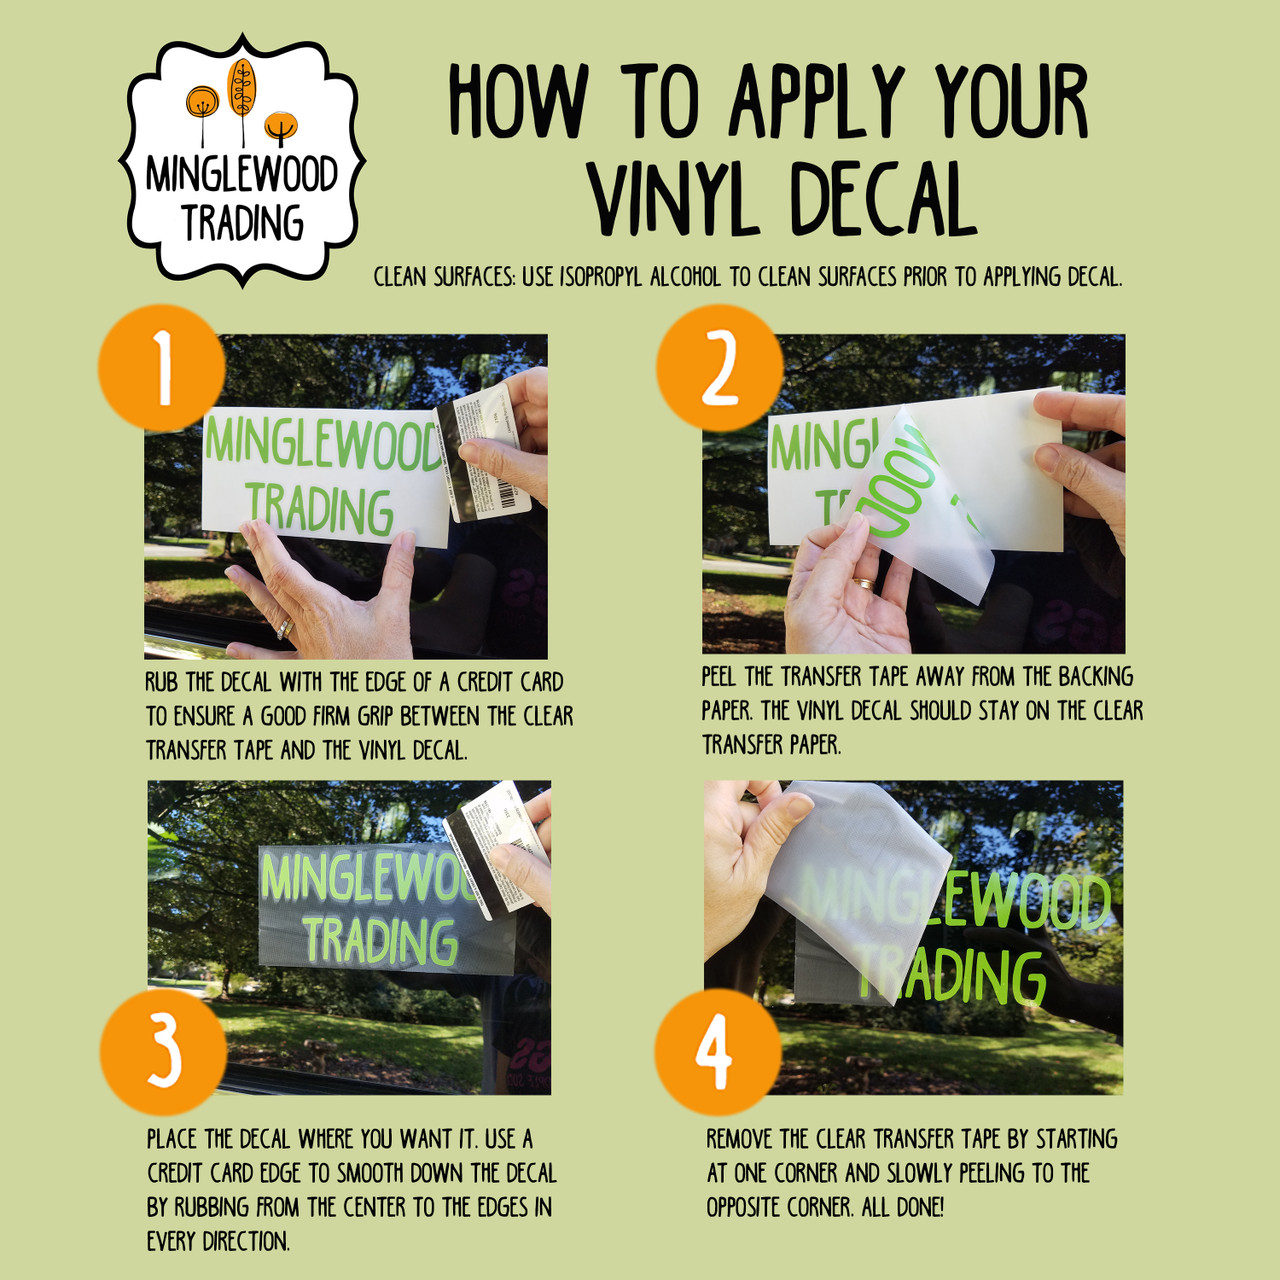 Application instructions for applying a vinyl die cut decal sticker by Minglewood Trading